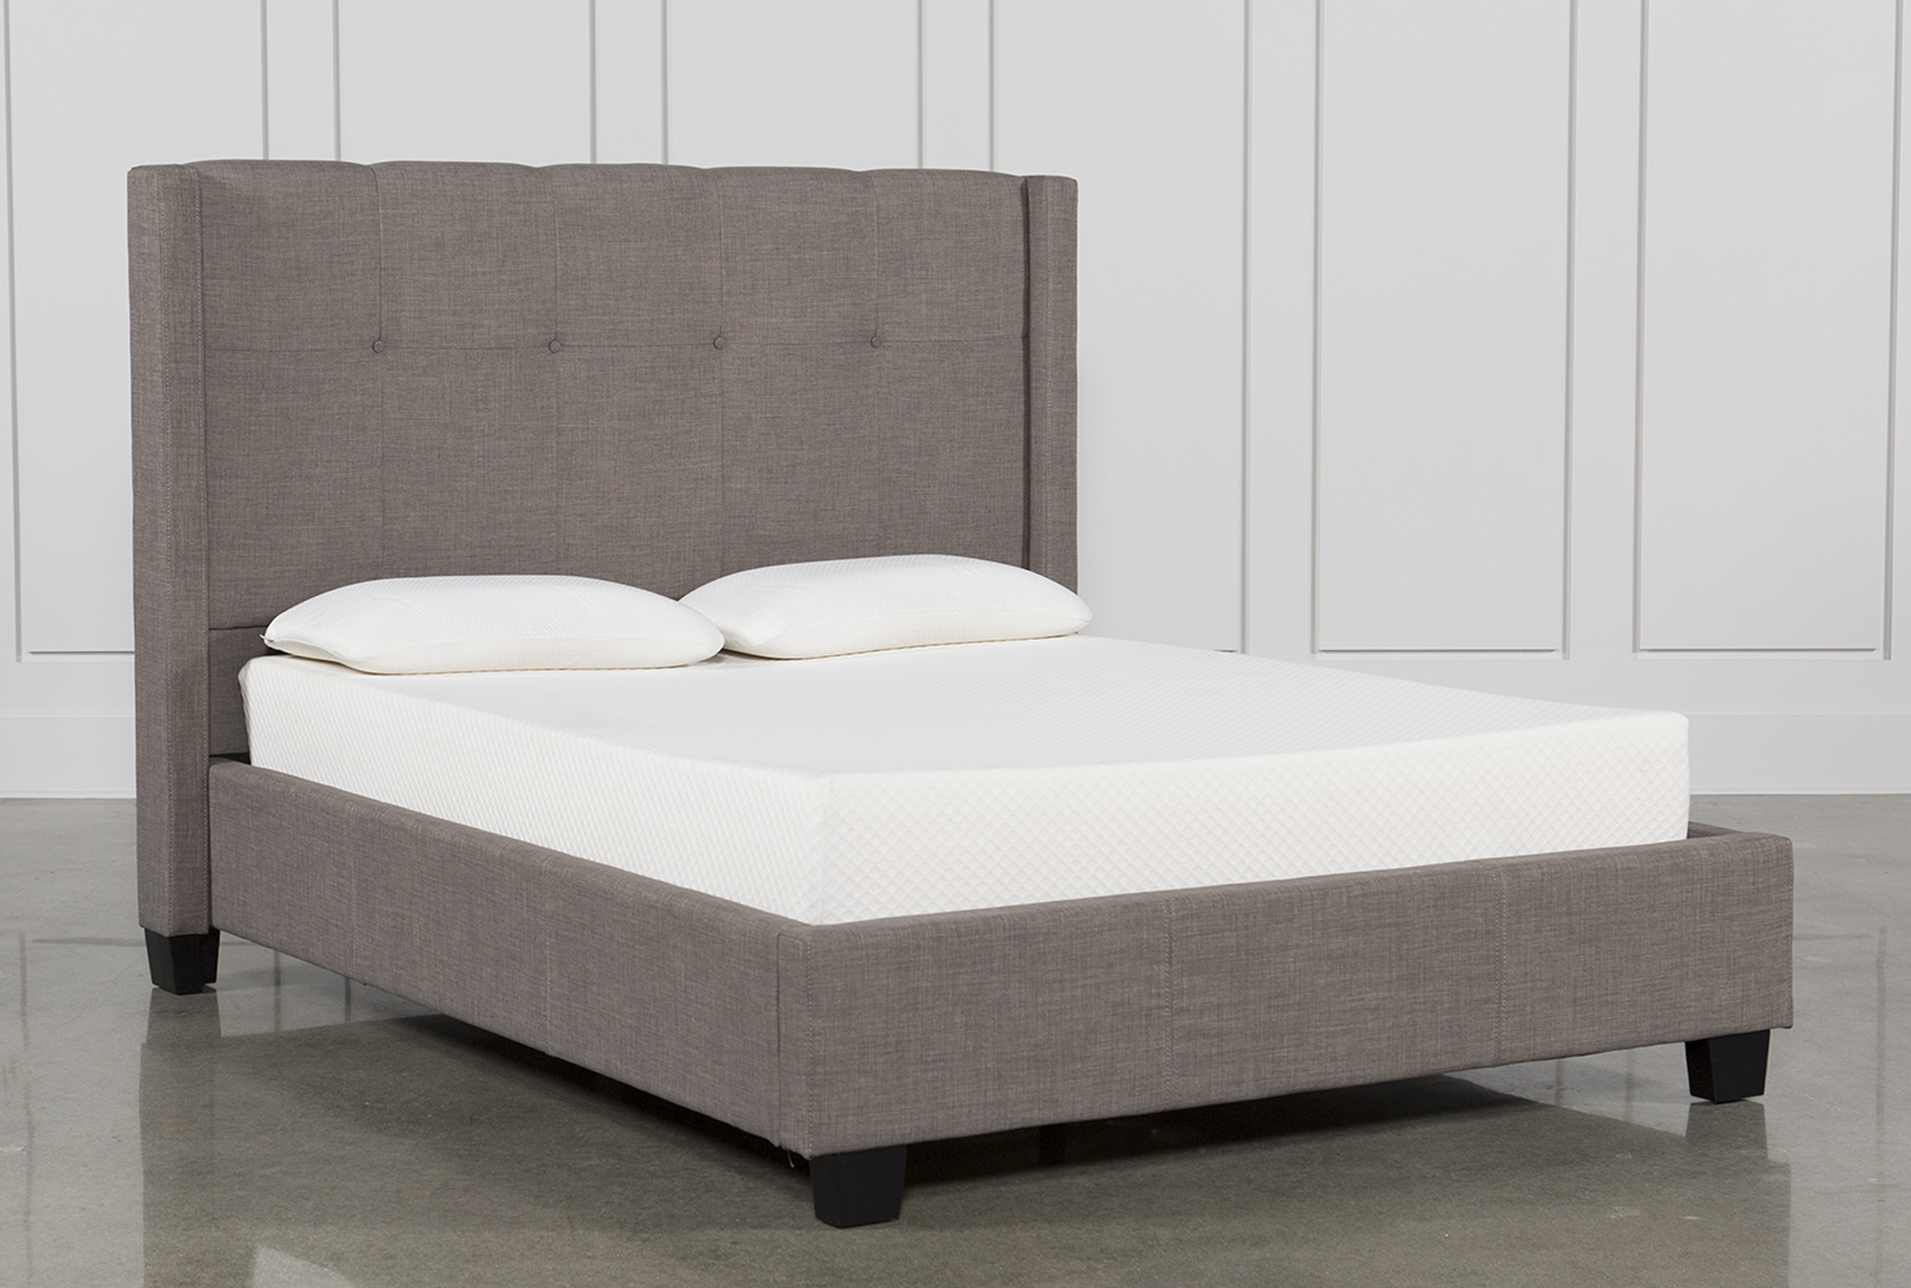 Superieur Damon Stone Eastern King Upholstered Platform Bed